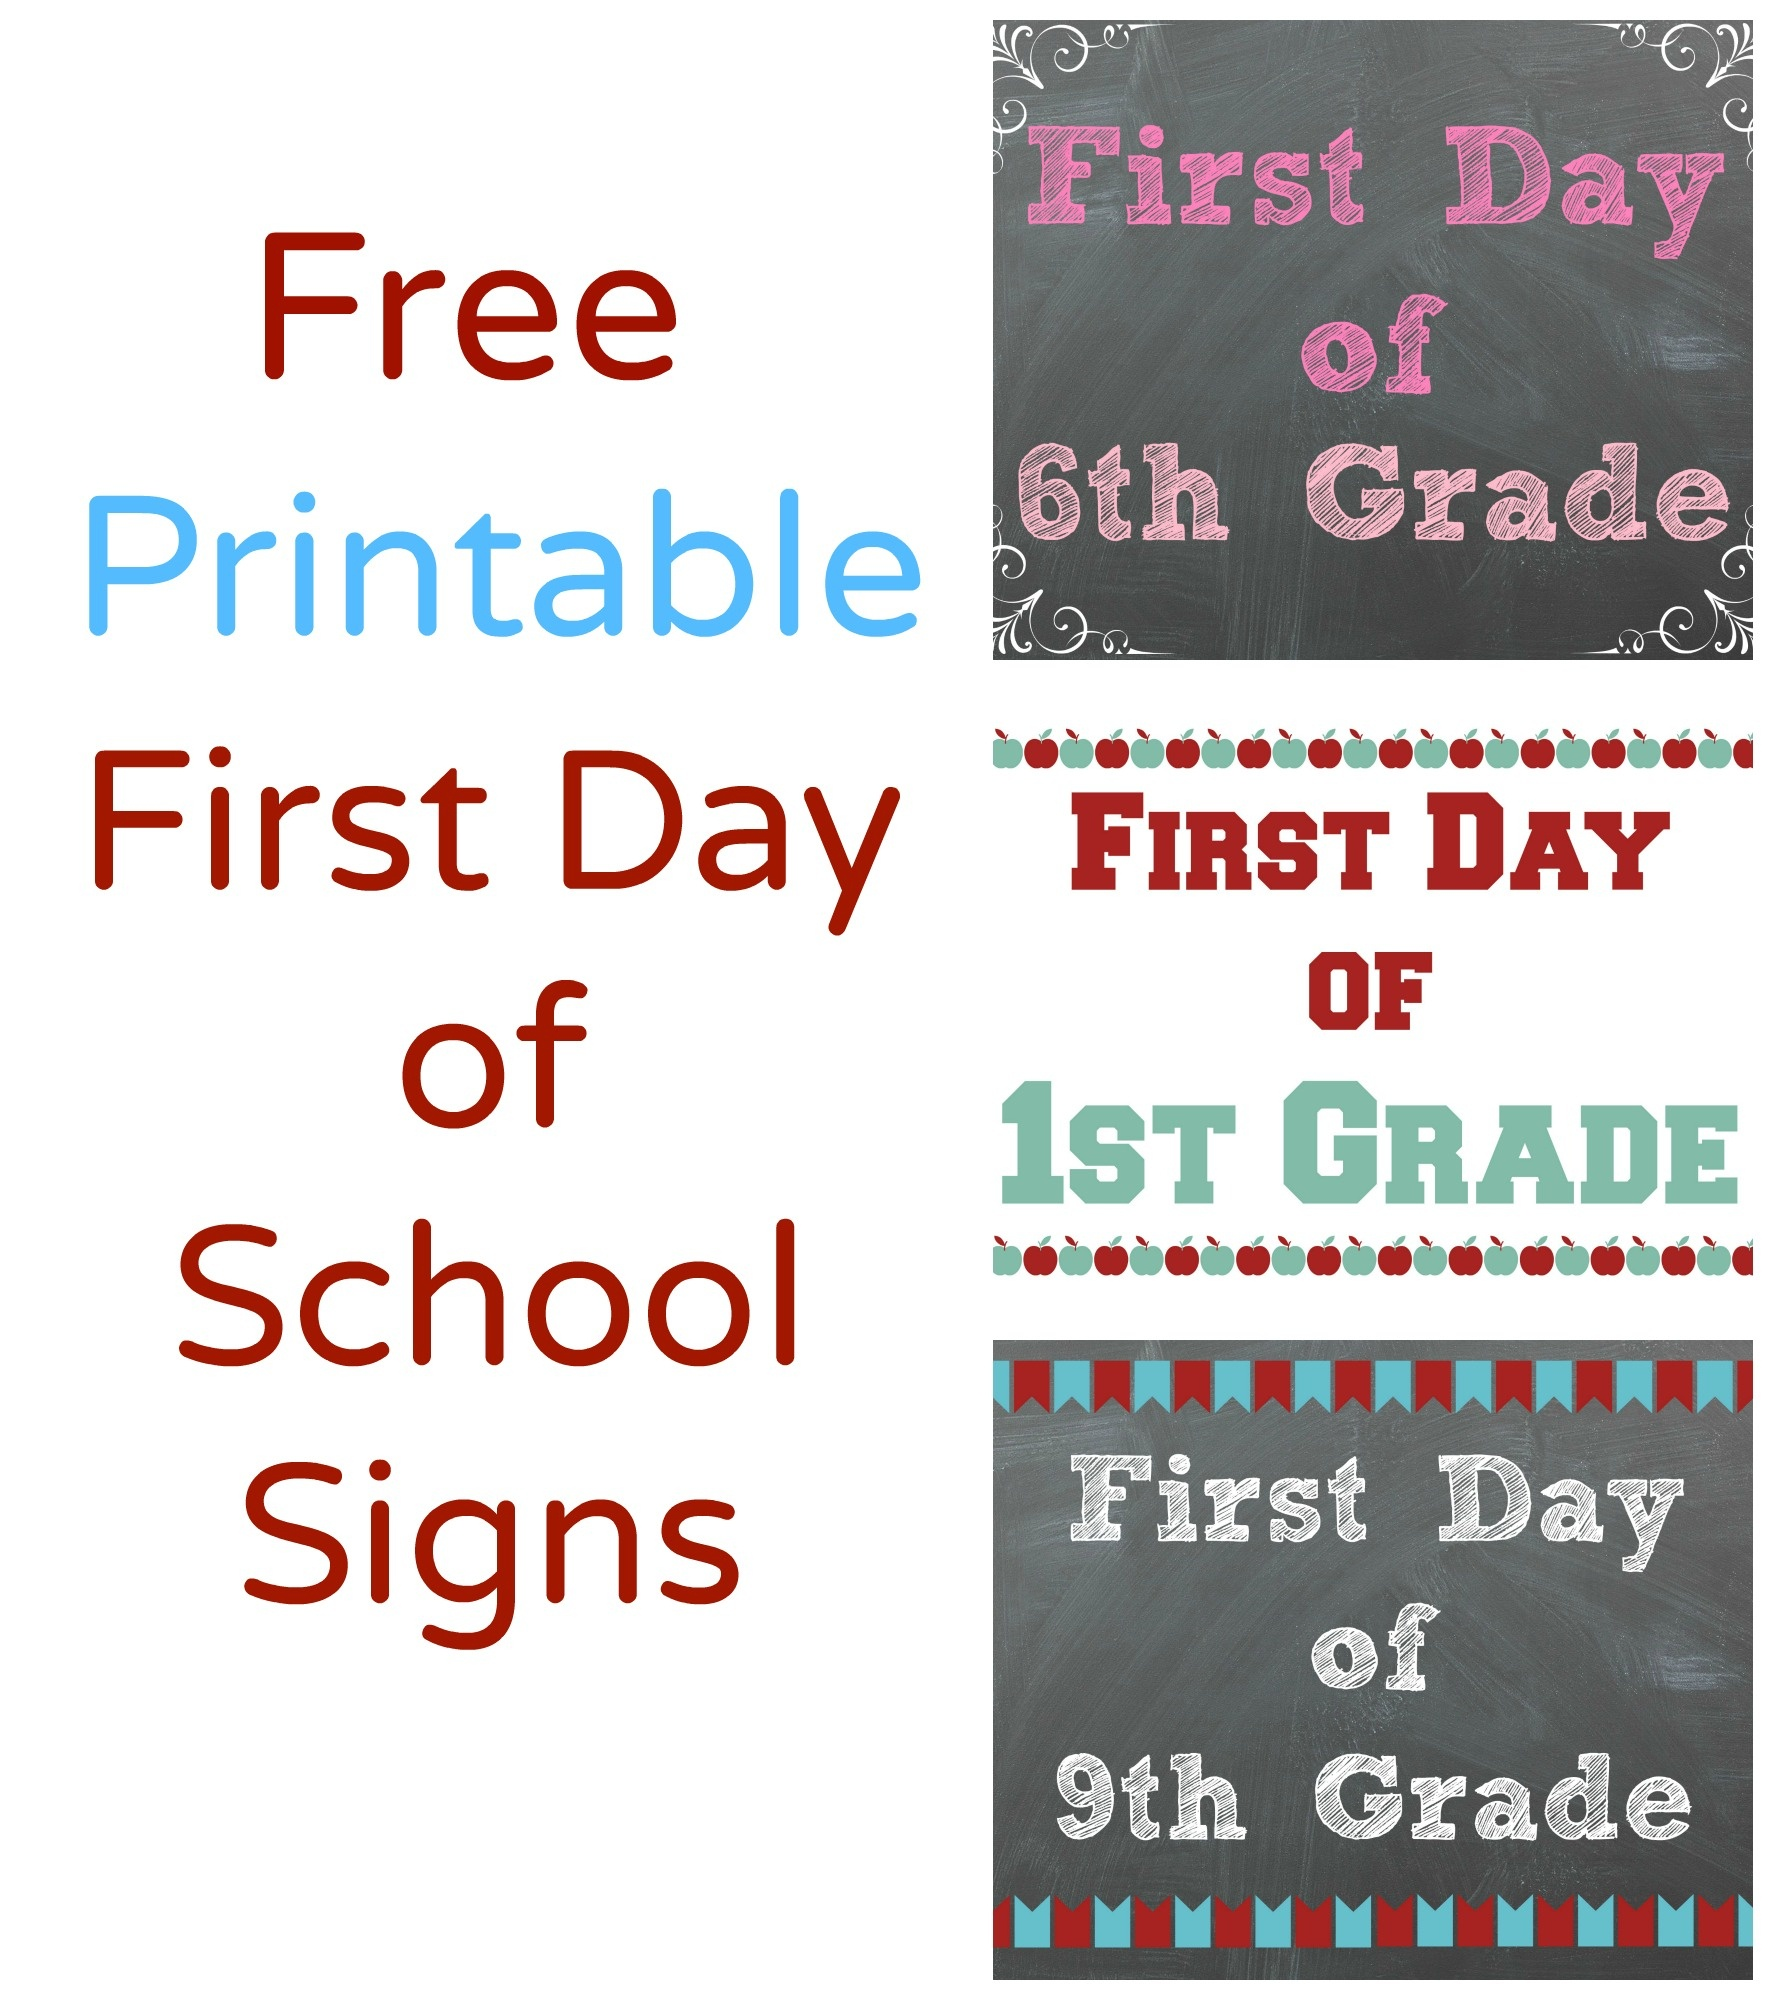 Free Printable First Day Of School Signs - Making It All Work - First Day Of School Template Free Printable